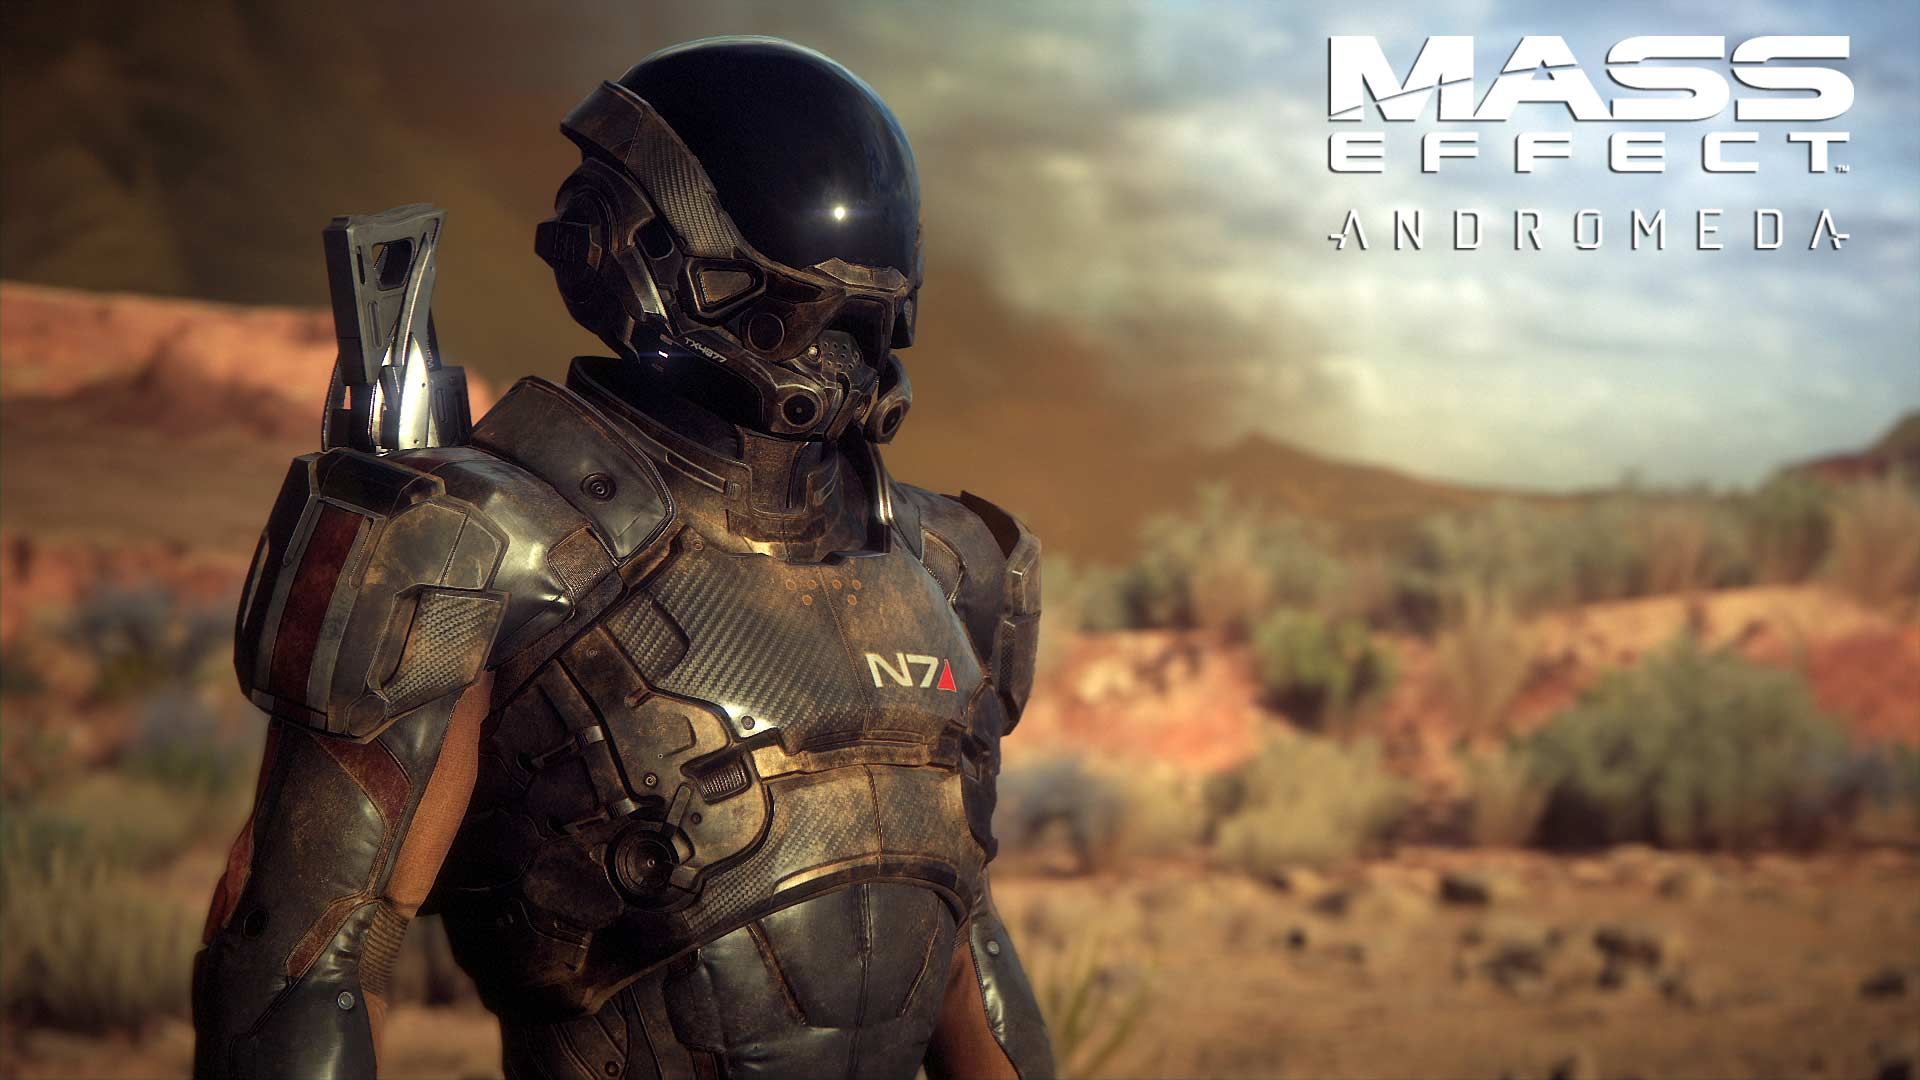 Mass Effect Andromeda Review 2020.Mass Effect Andromeda Review A Bumpy Ride But Worth